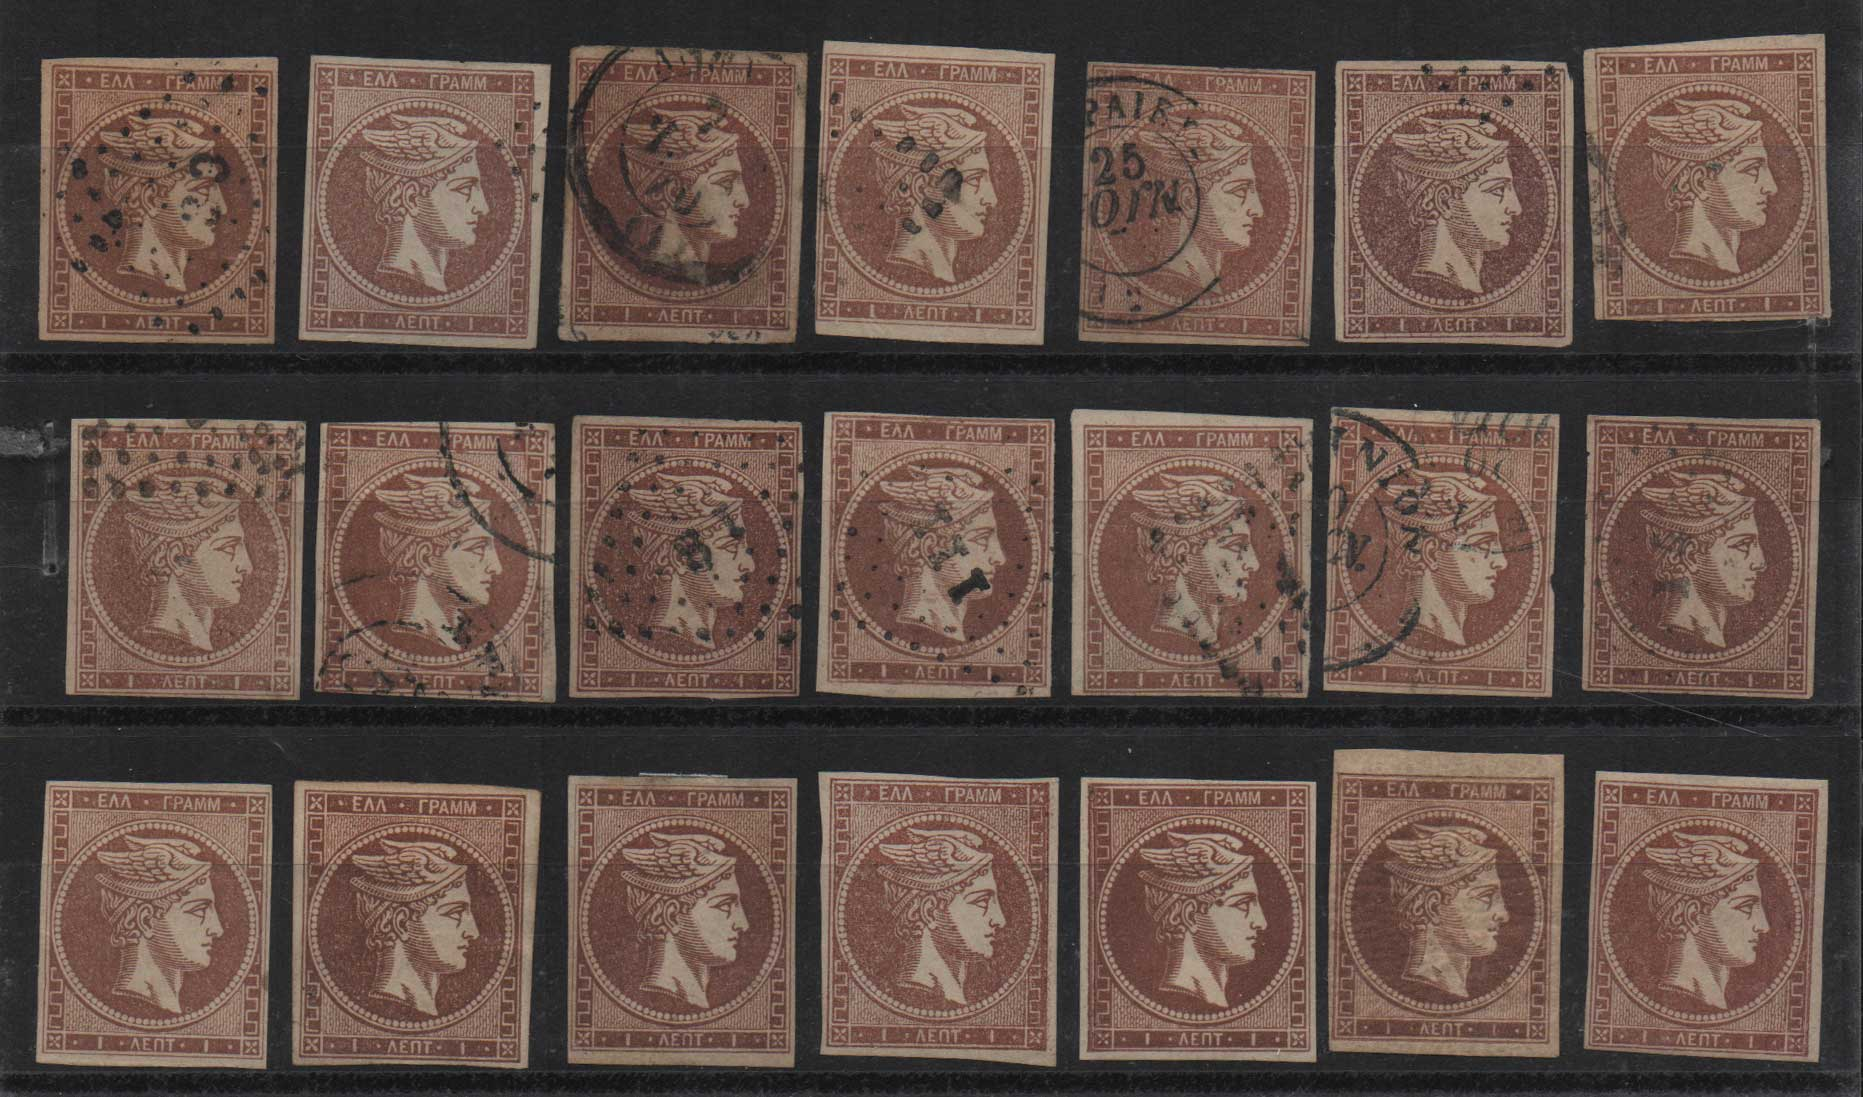 Lot 11 - -  LARGE HERMES HEAD large hermes head -  Athens Auctions Public Auction 71 General Stamp Sale